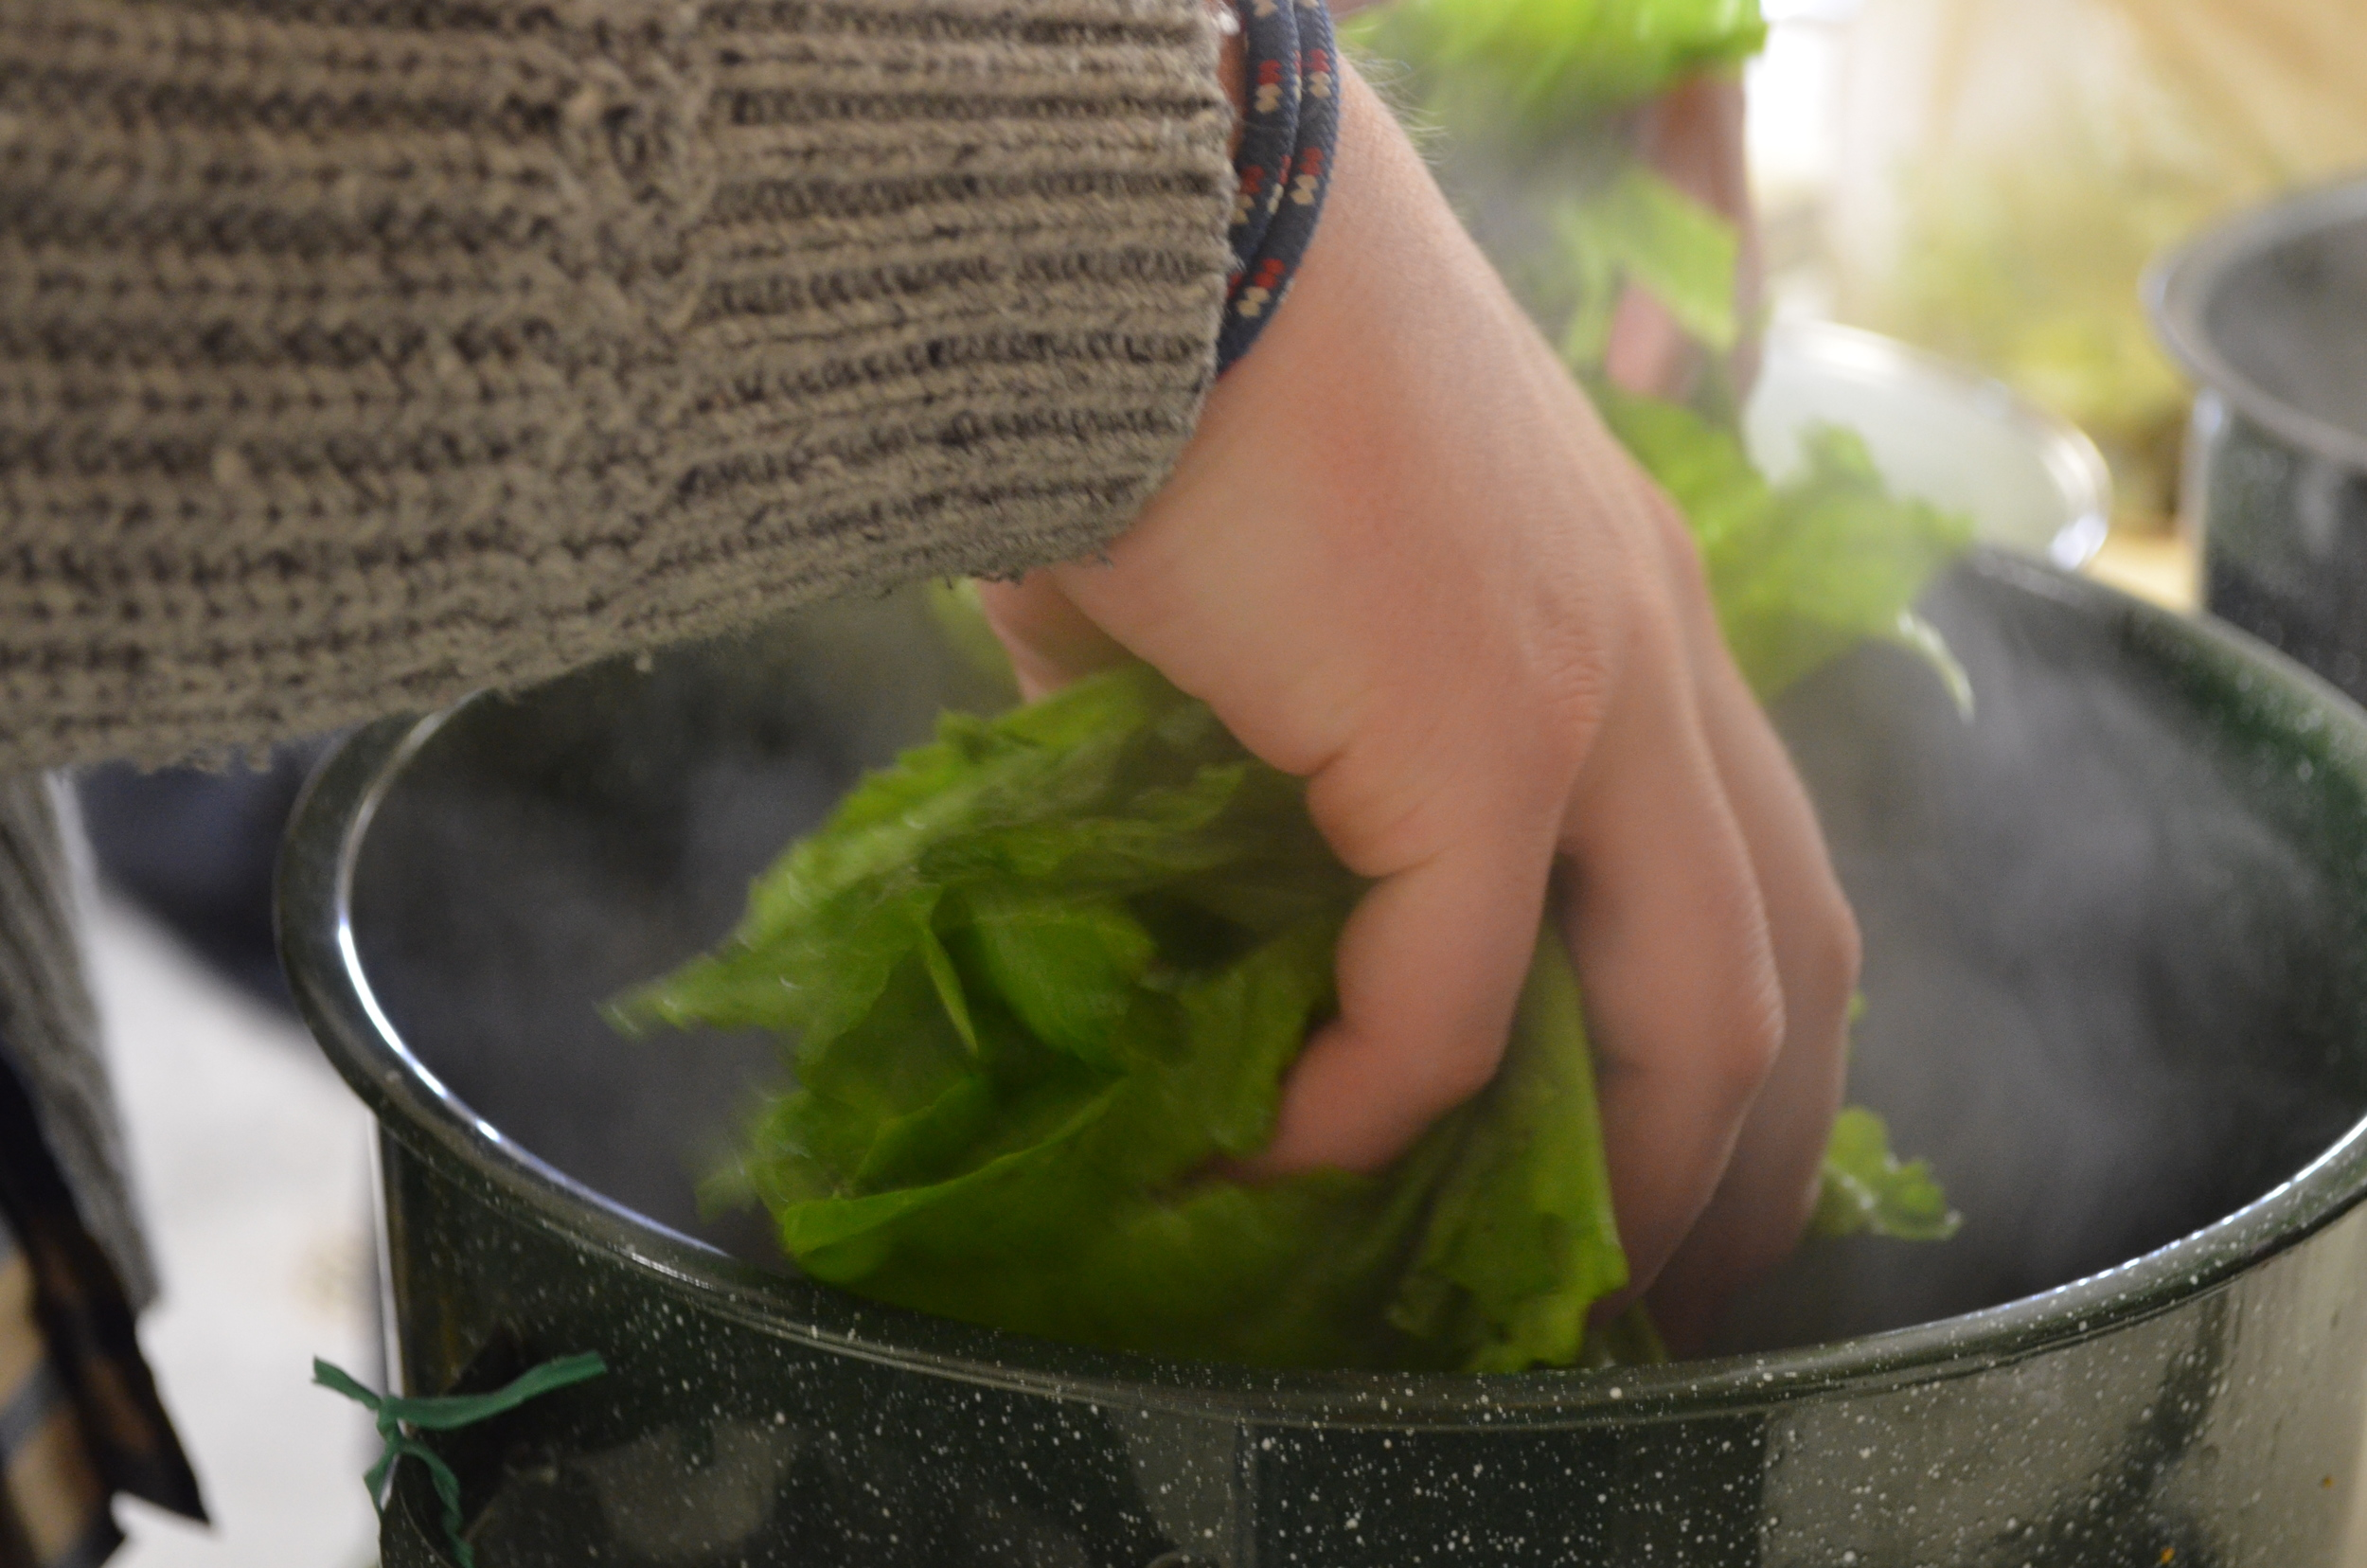 We use our special Green(s) pot to simmer our Greens